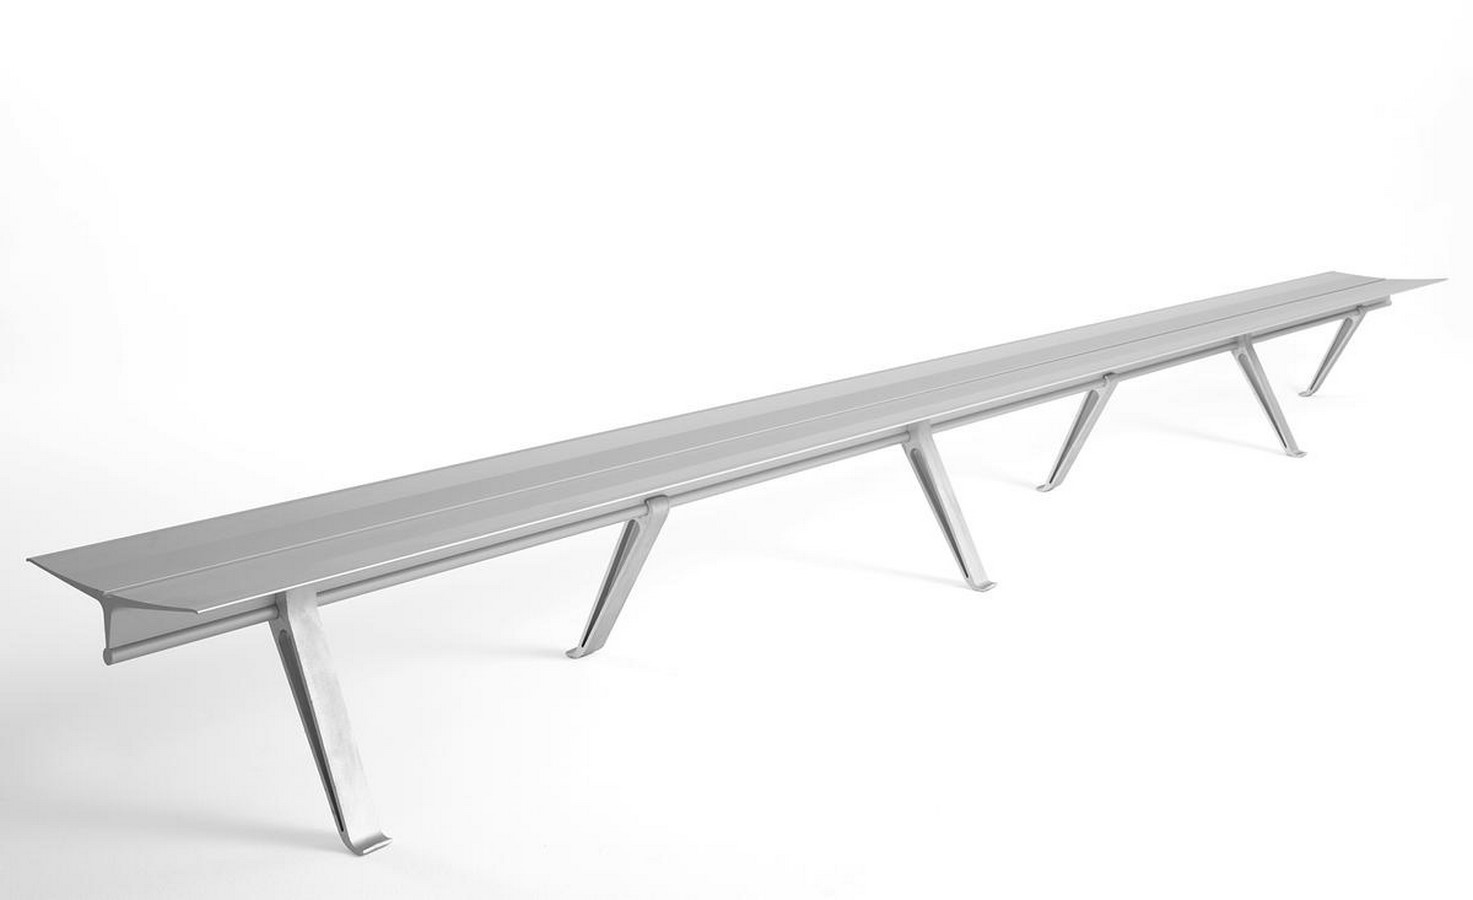 ALU-BENCH by the Meter - Sheet2